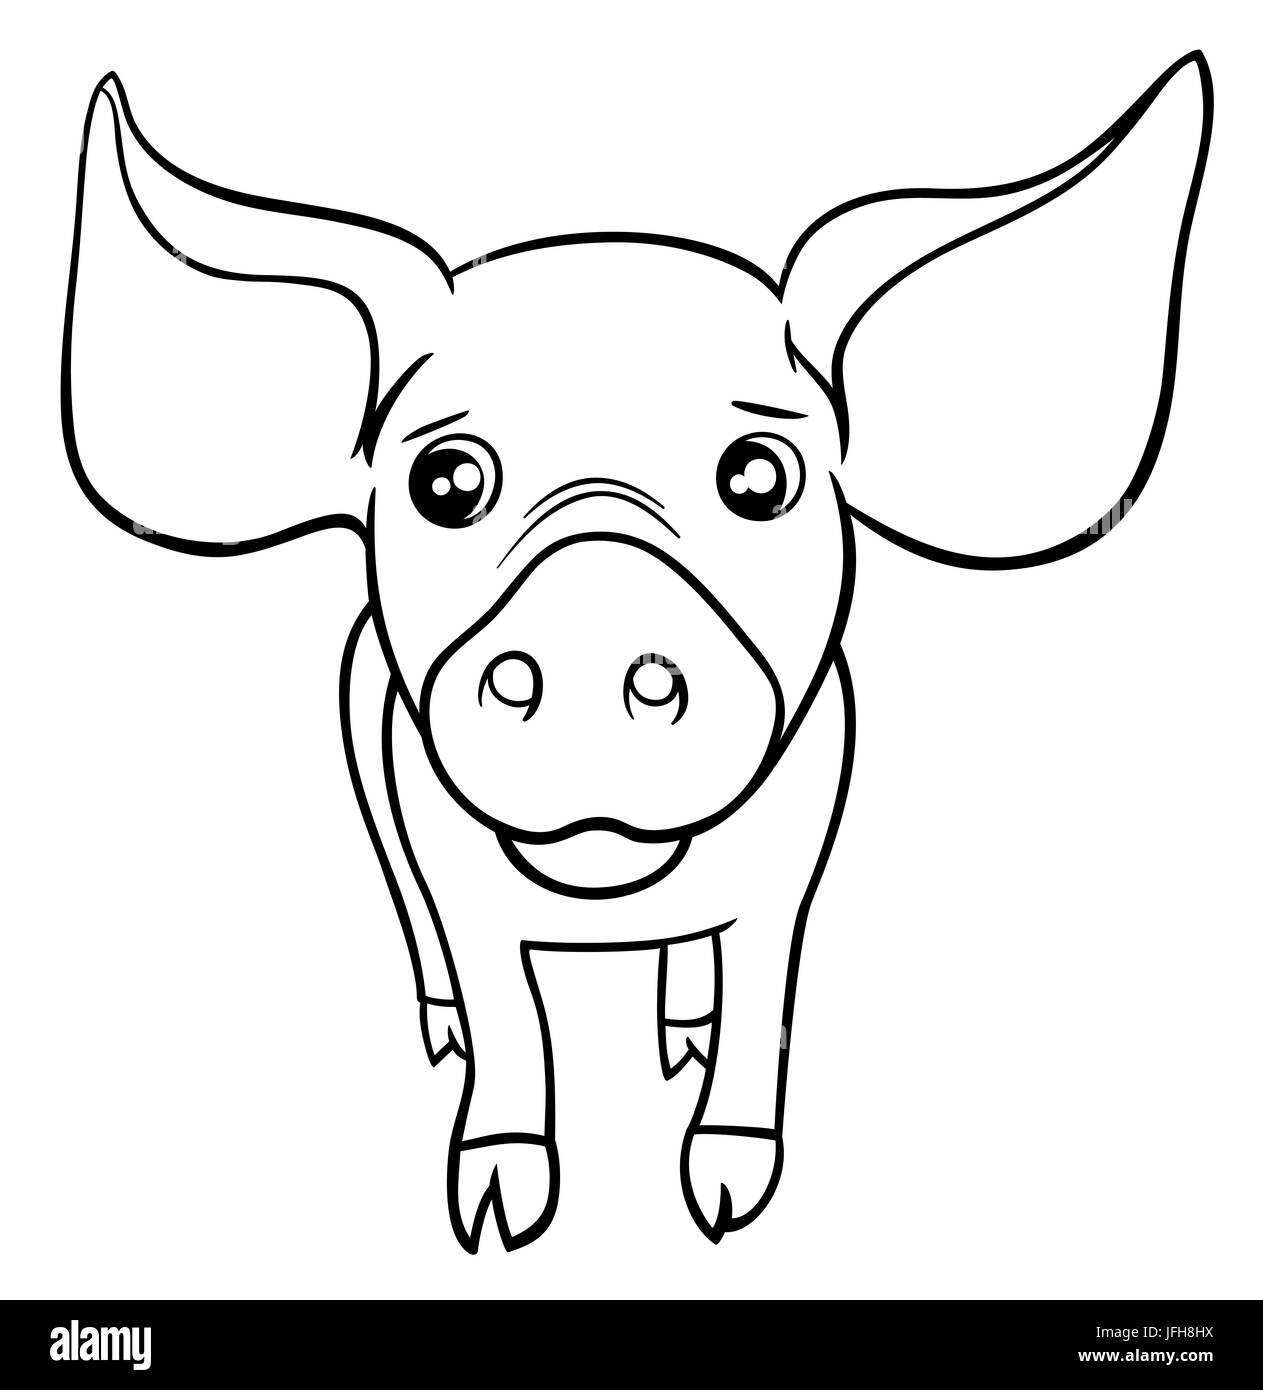 Pig Or Piglet Coloring Page Stock Photo 147282742 Alamy